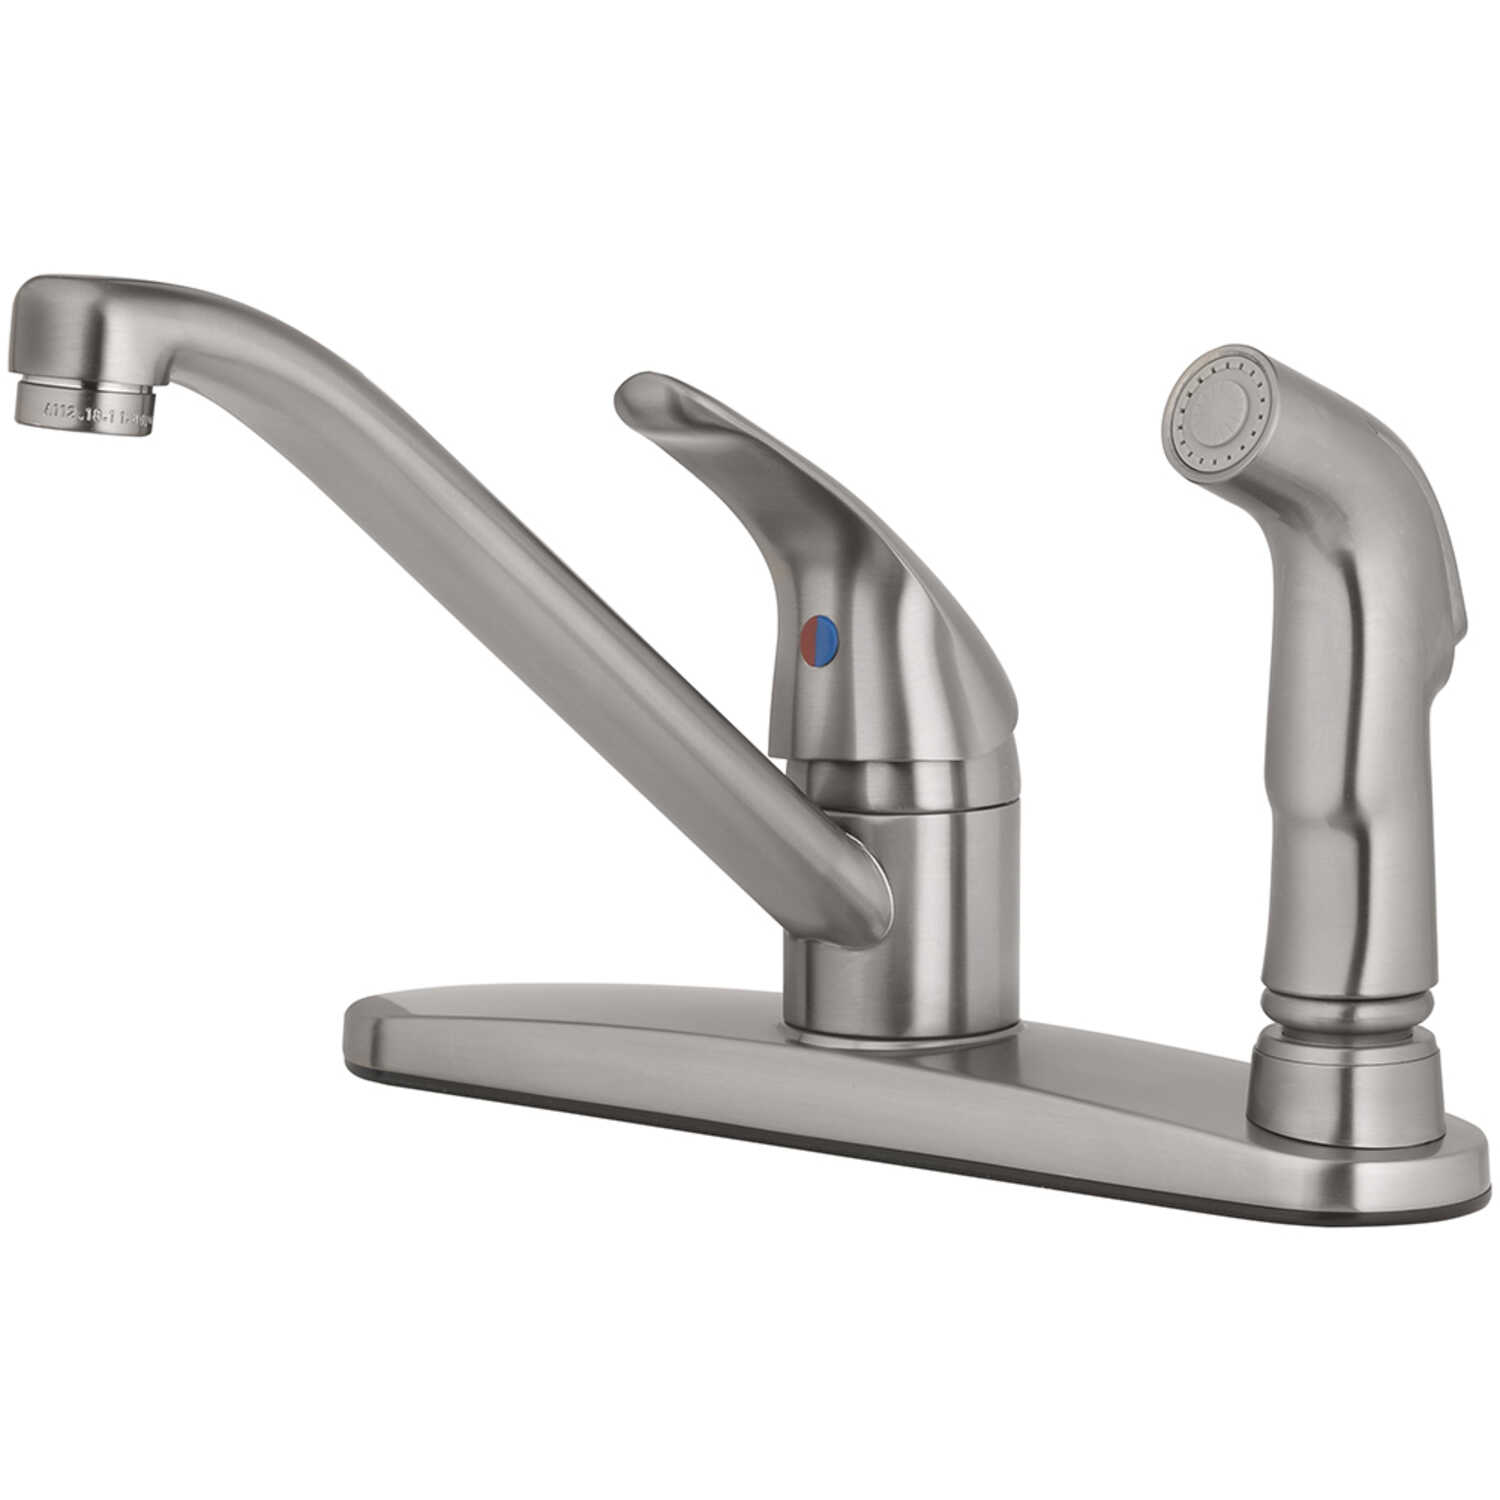 OakBrook  Essentials  Single Handle Kitchen w/Spray  Brushed Nickel  Kitchen Faucet  Side Sprayer In